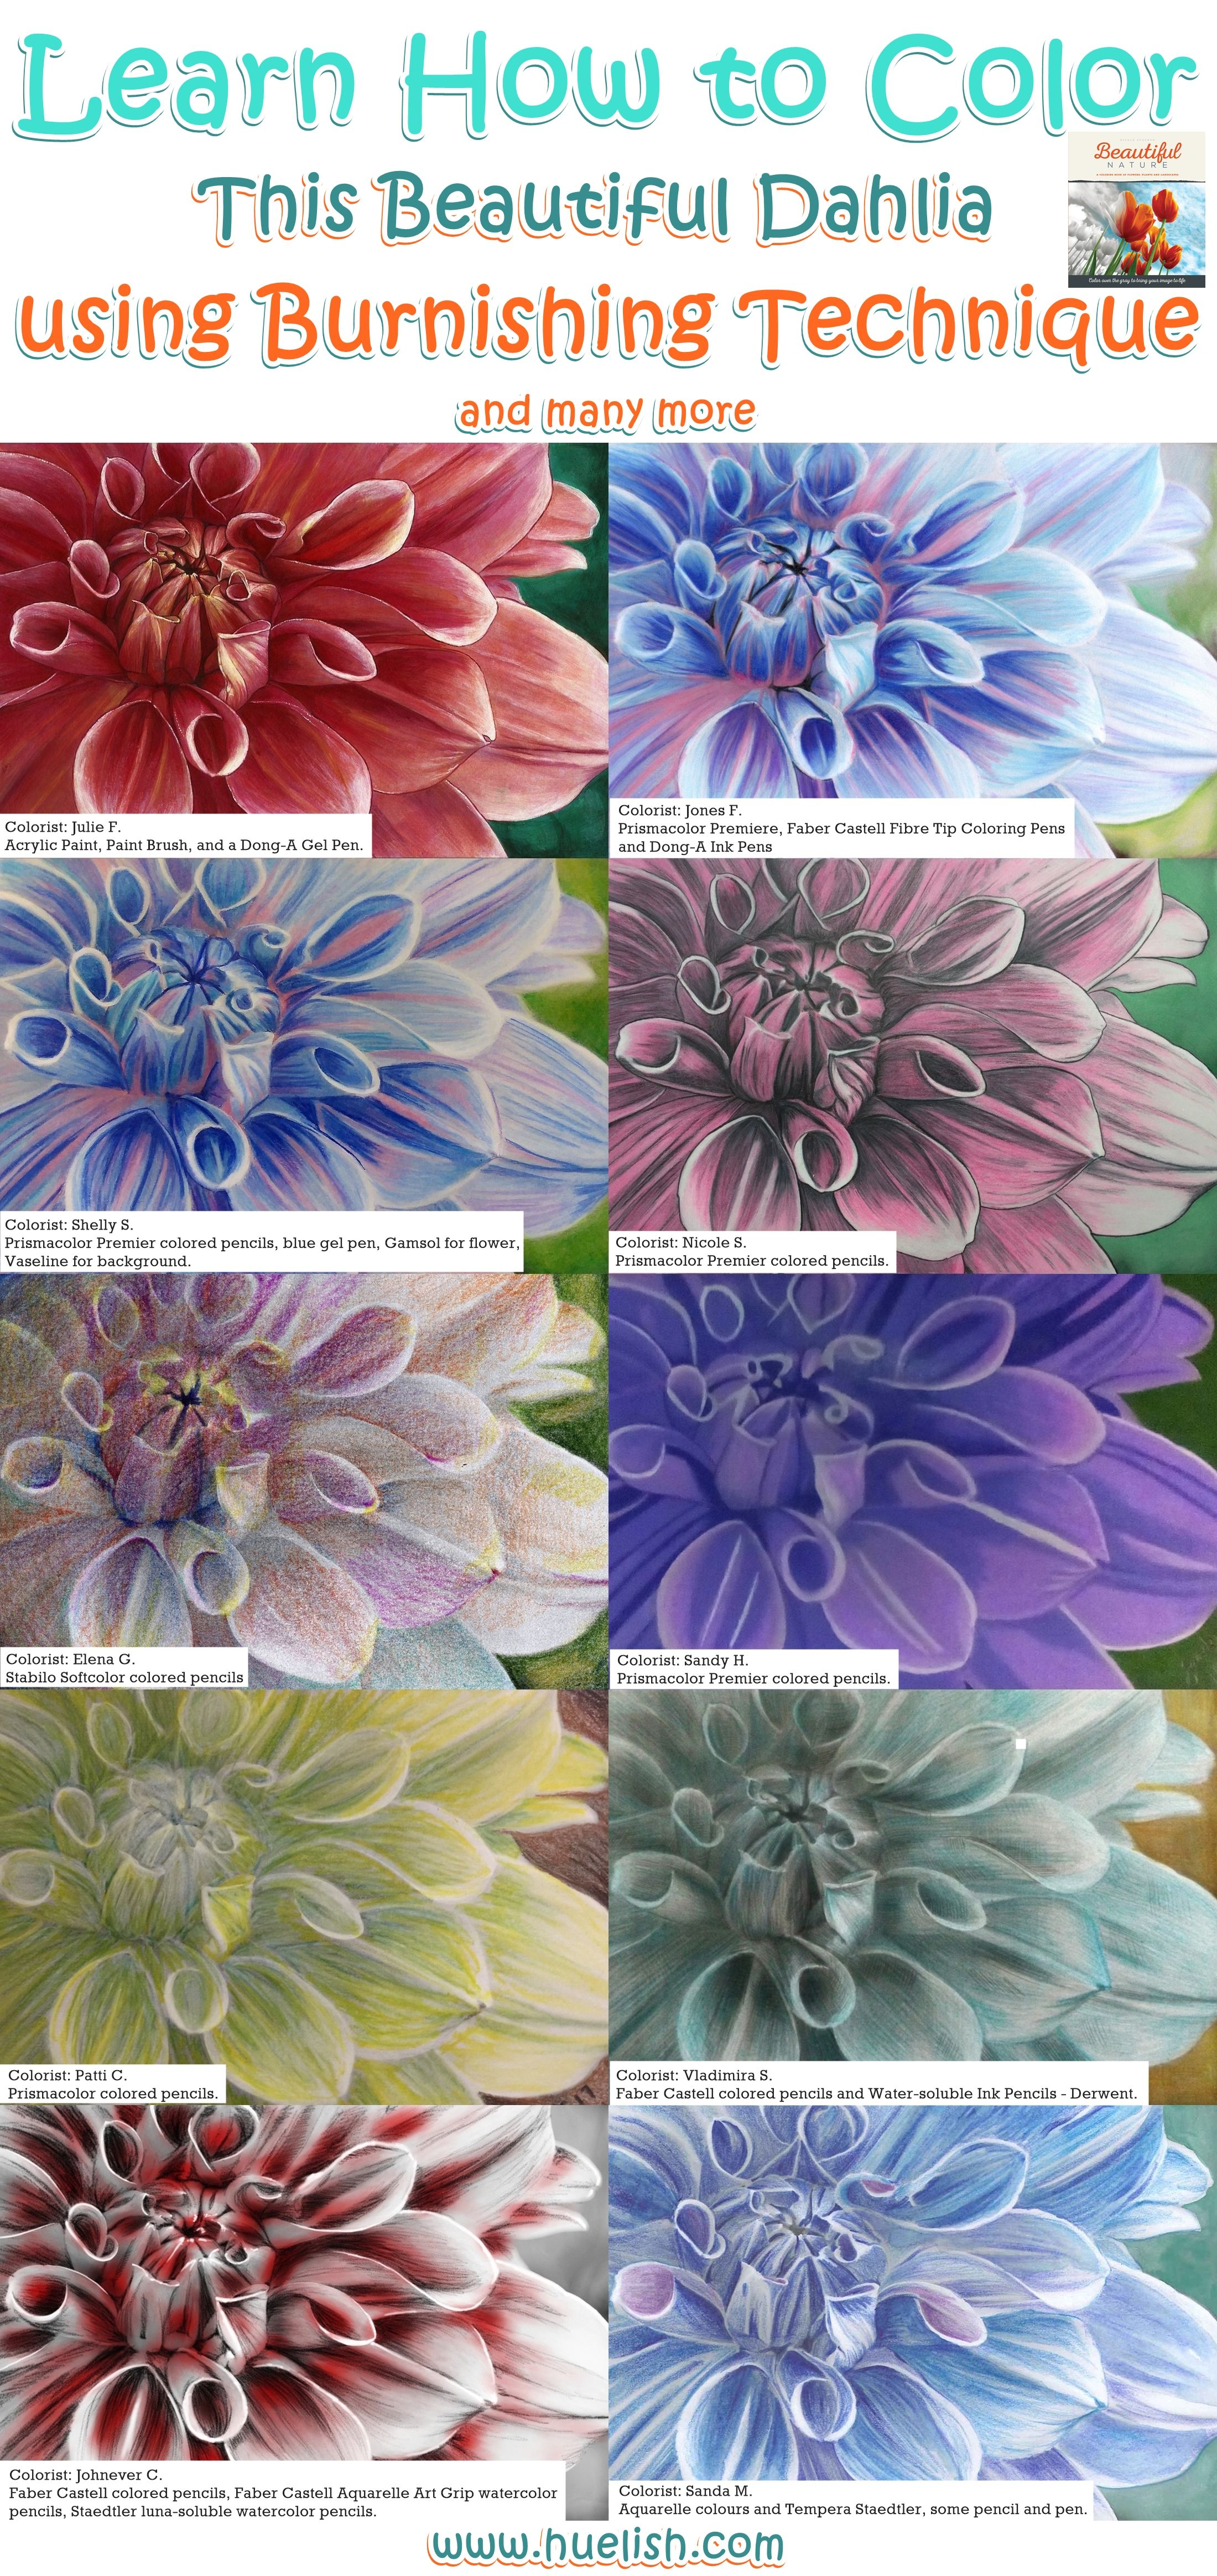 Here Are Examples Of The Dahlia Flower From The Beautiful Nature Grayscale Coloring Book Colored Grayscale Coloring Books Grayscale Coloring Coloring Book Art